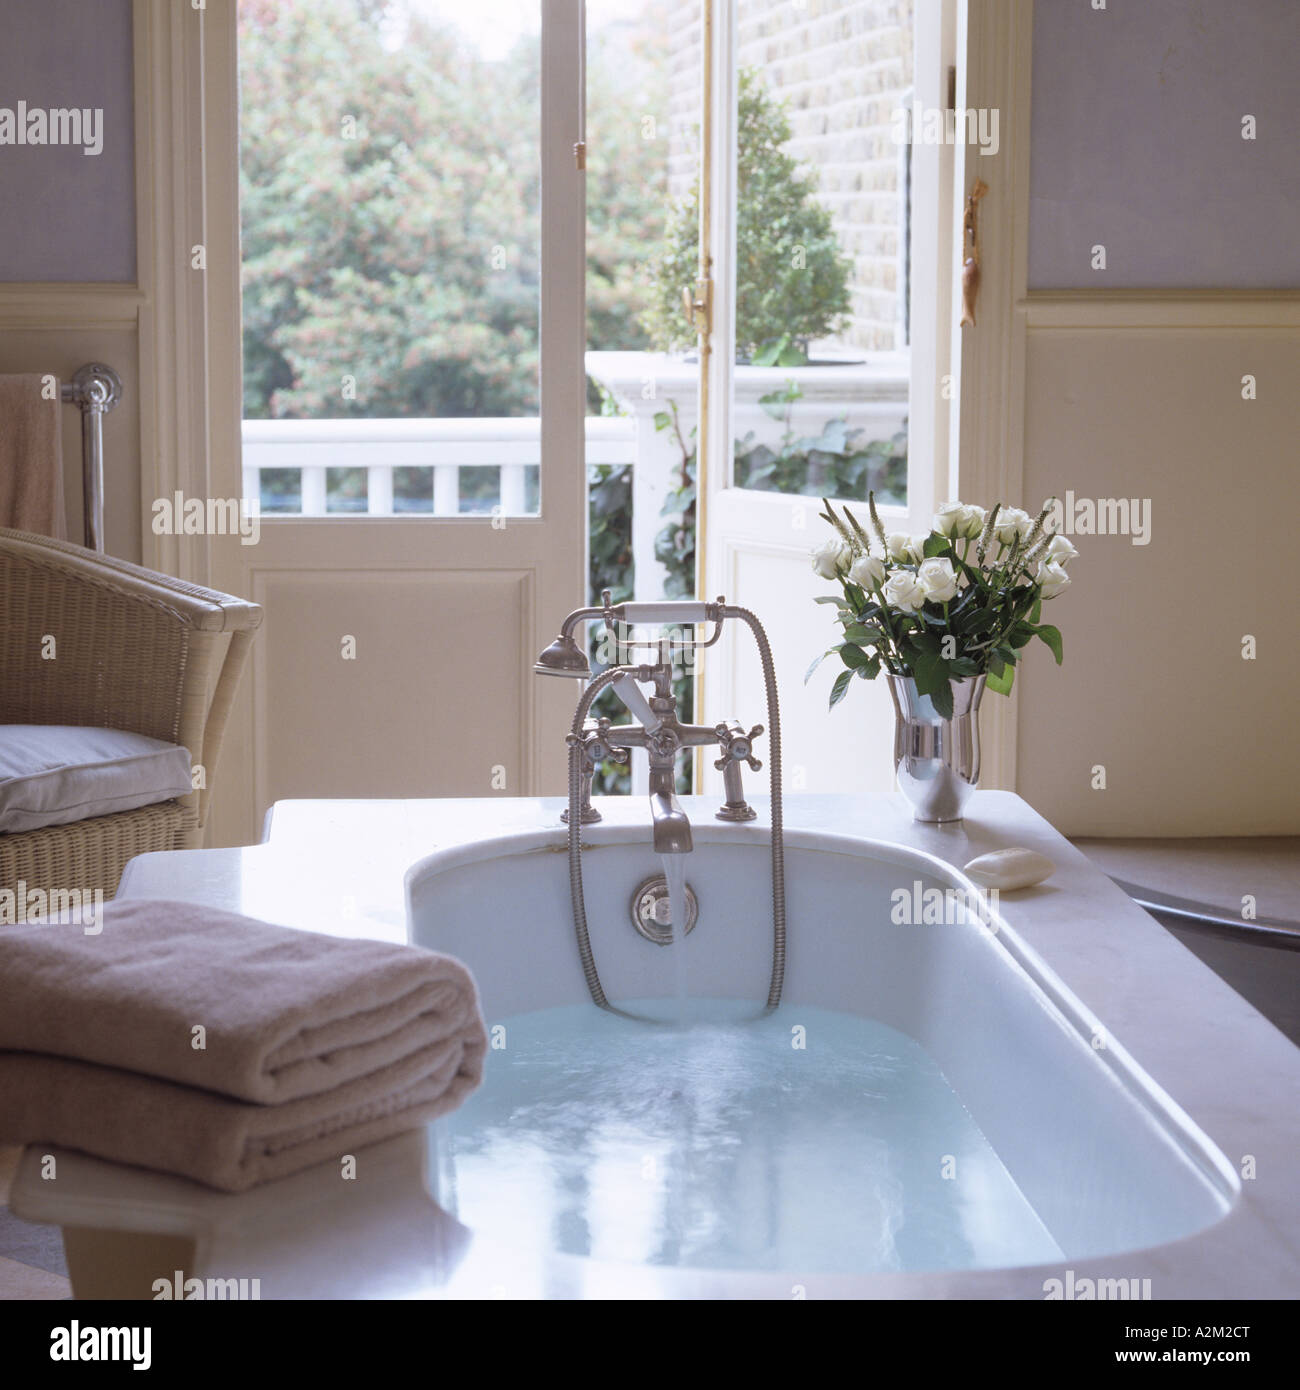 Running bath in bathroom with french doors and balcony stock photo royalty free image 10550327 - Small french doors for bathroom ...